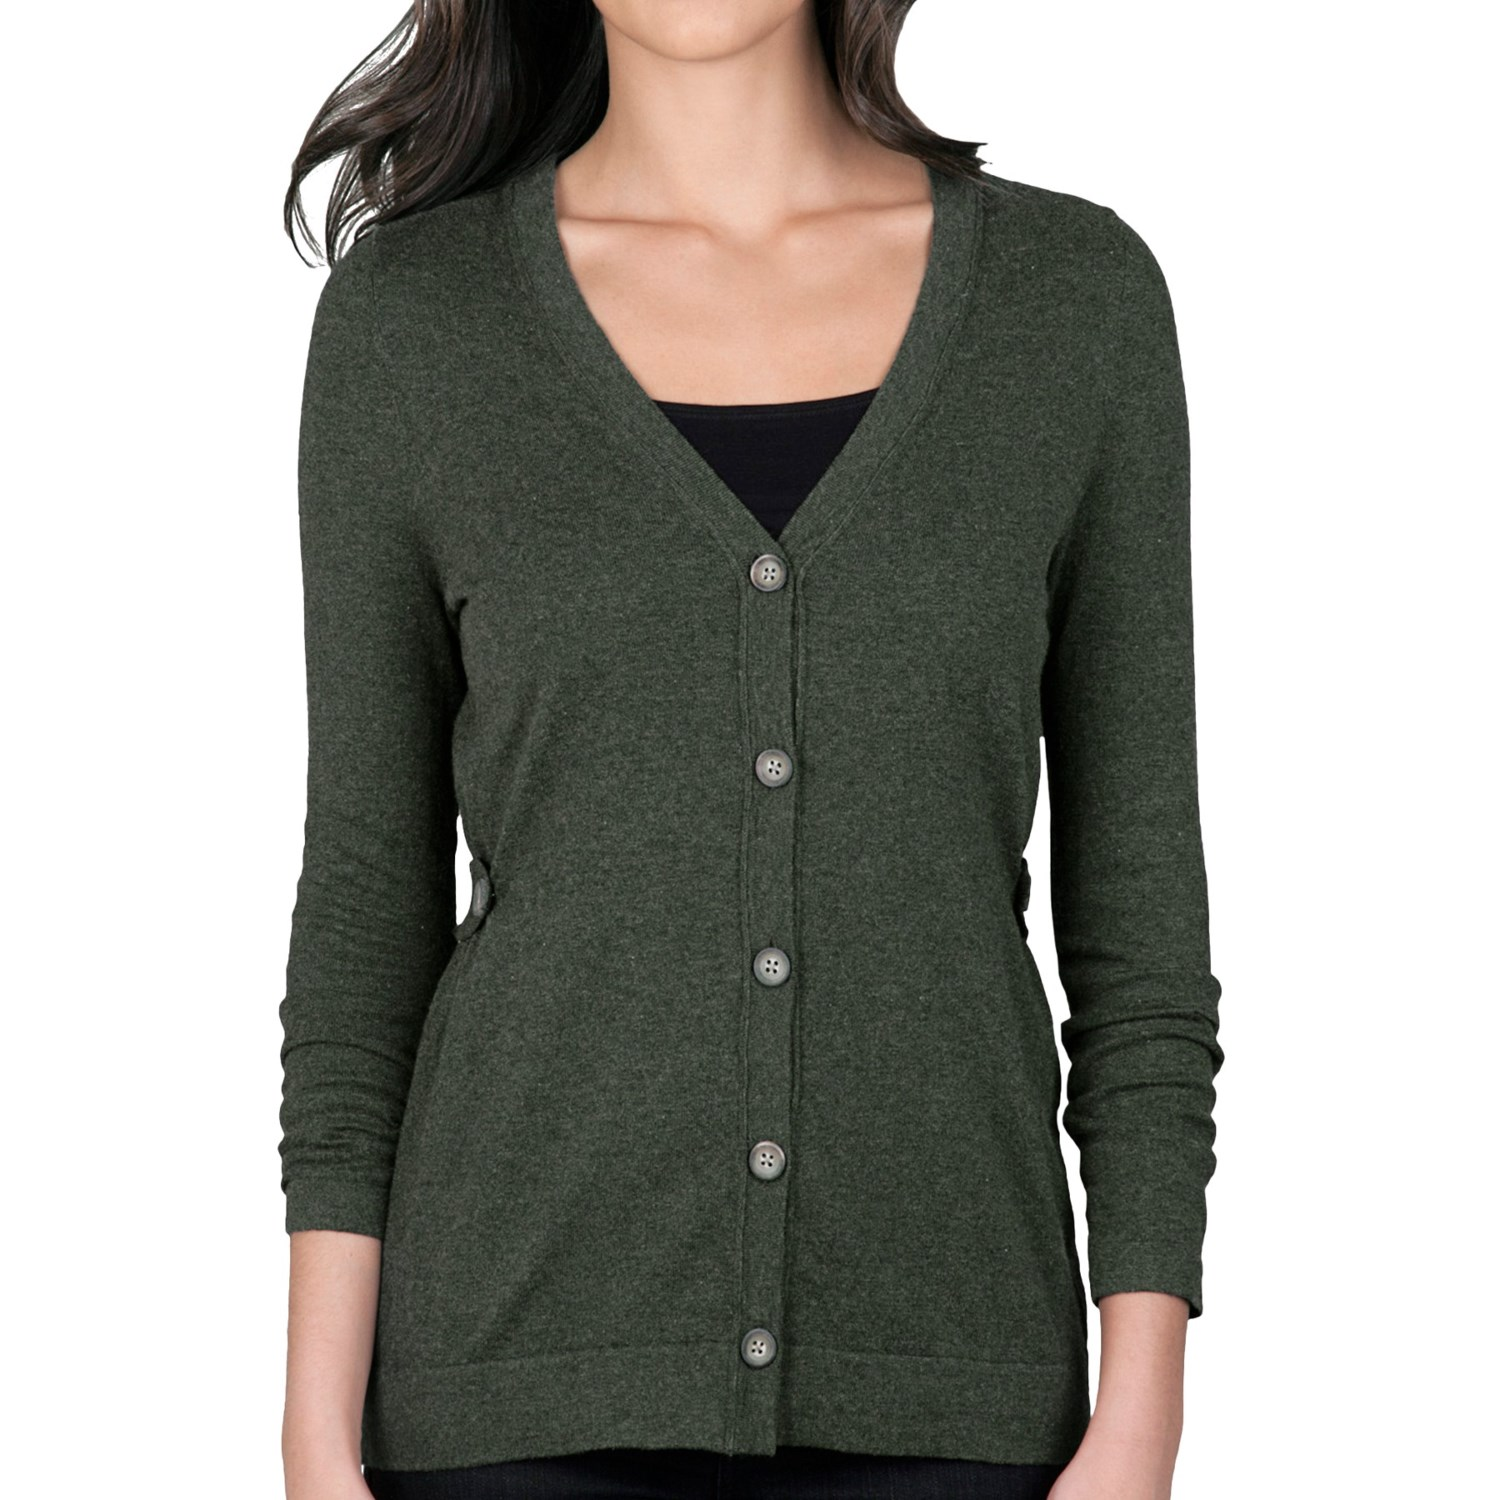 Layering is a breeze with Lands' End collection of women's cardigans sweaters. Available in a wide array of knits and designs in sizes for everyone. Shop today!